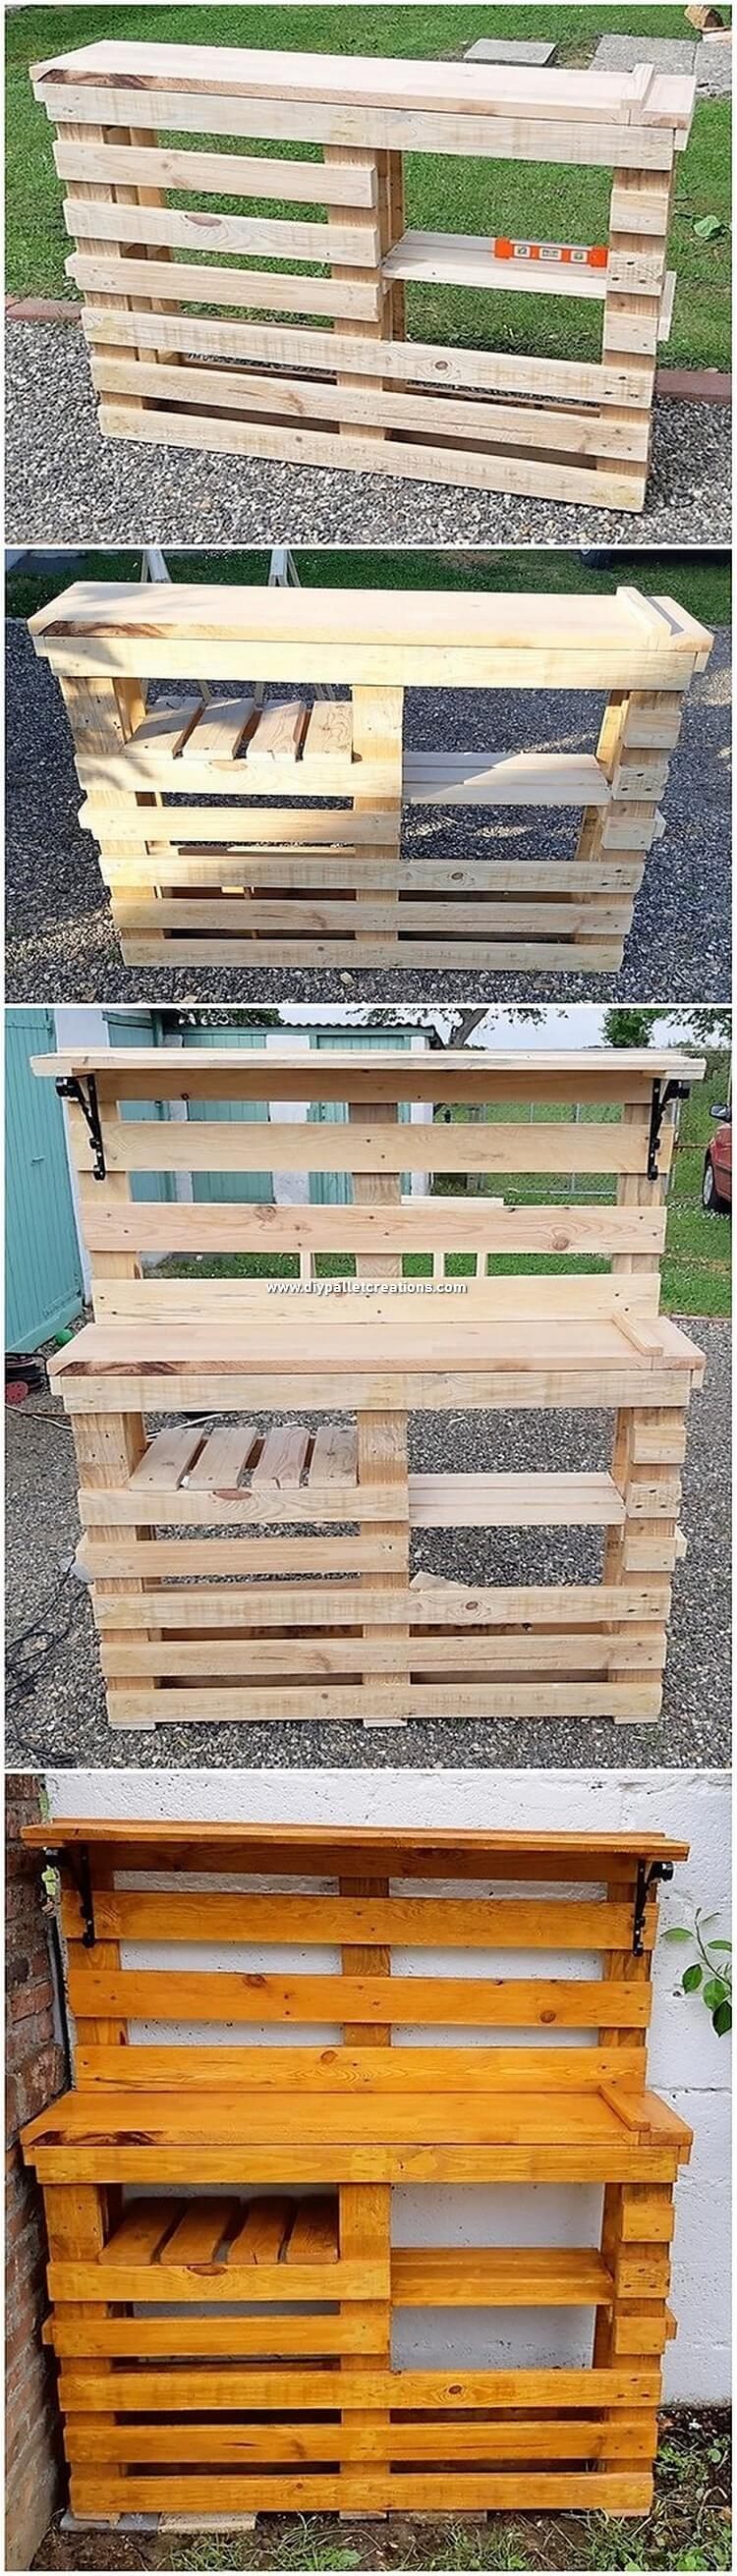 DIY Pallet Garden Counter Table